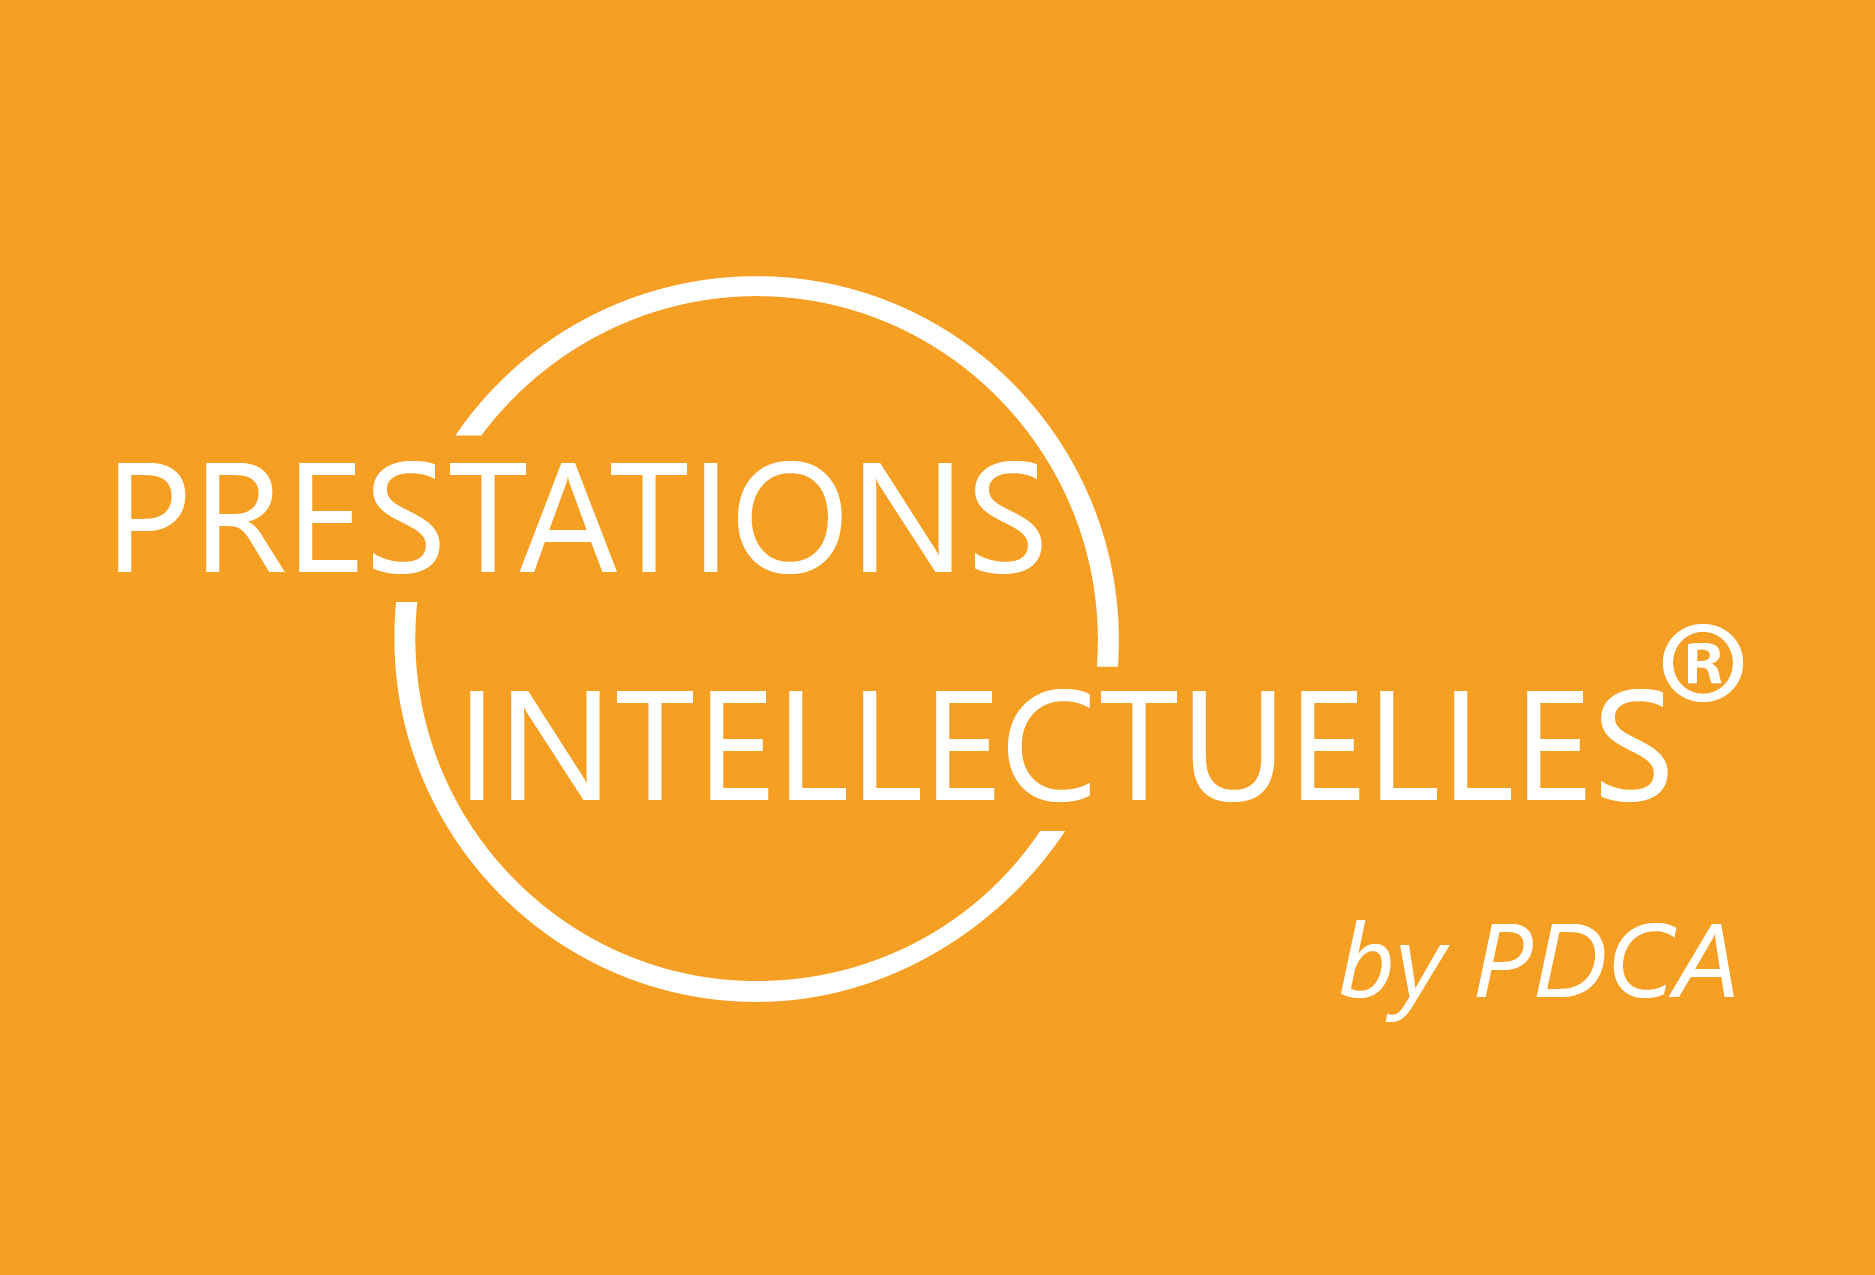 Illustration prestations intellectuelles PDCA